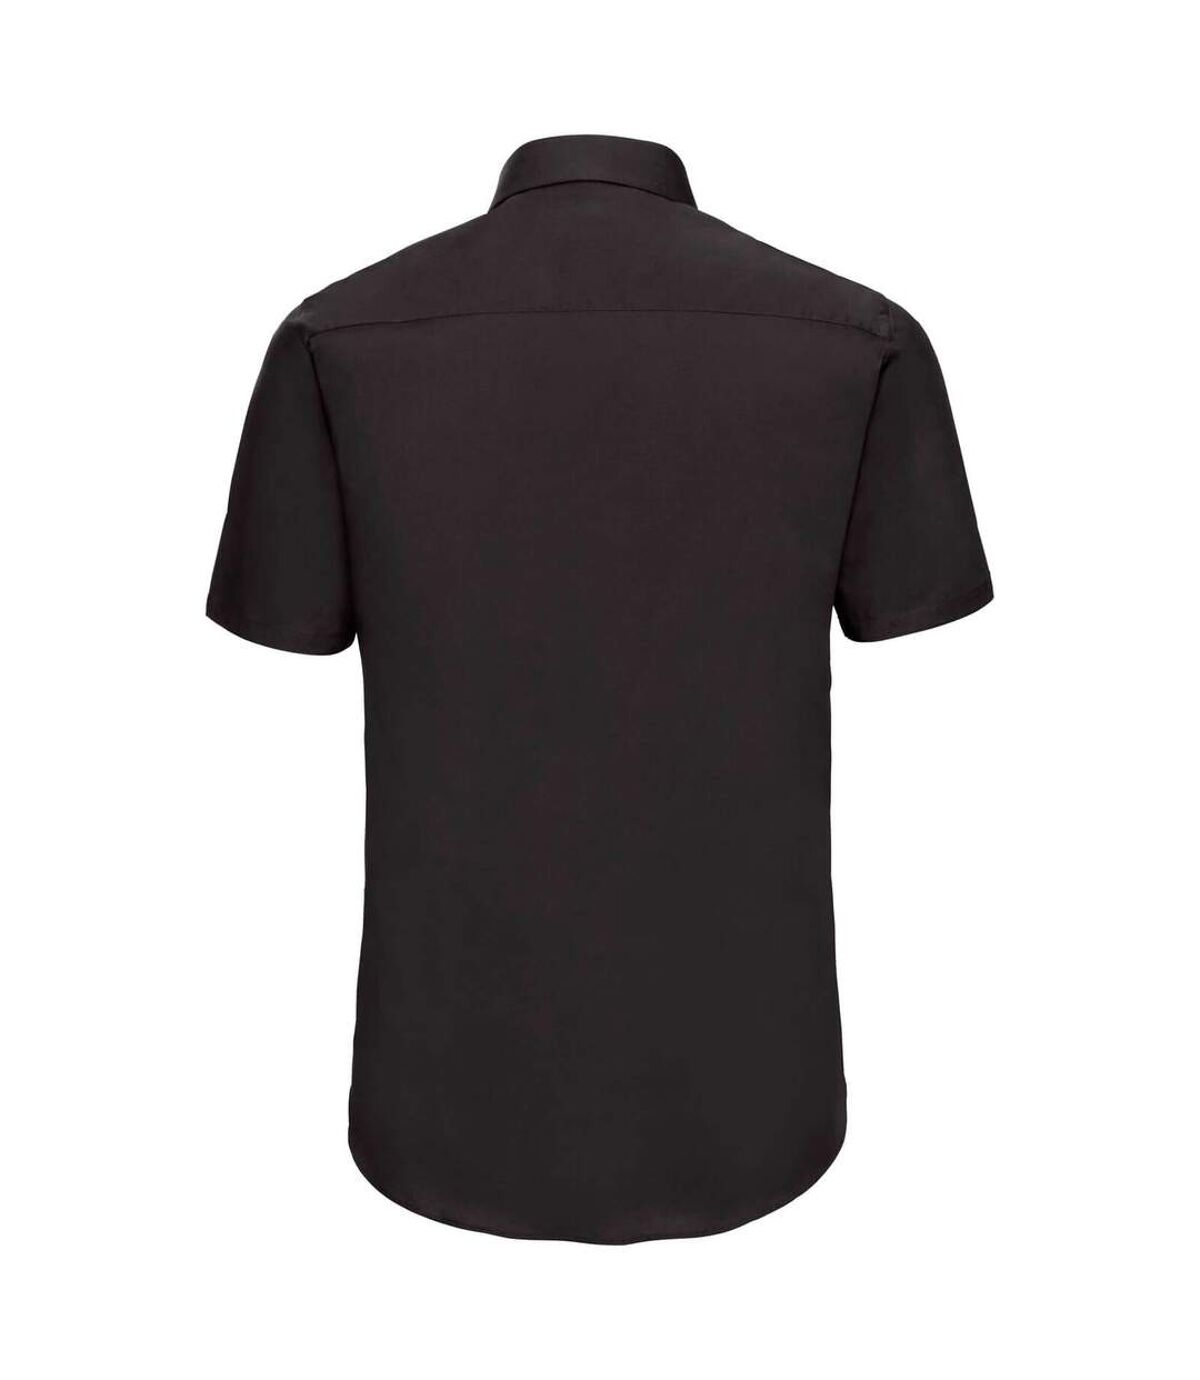 Russell Collection Mens Short Sleeve Easy Care Fitted Shirt (Black) - UTBC1033